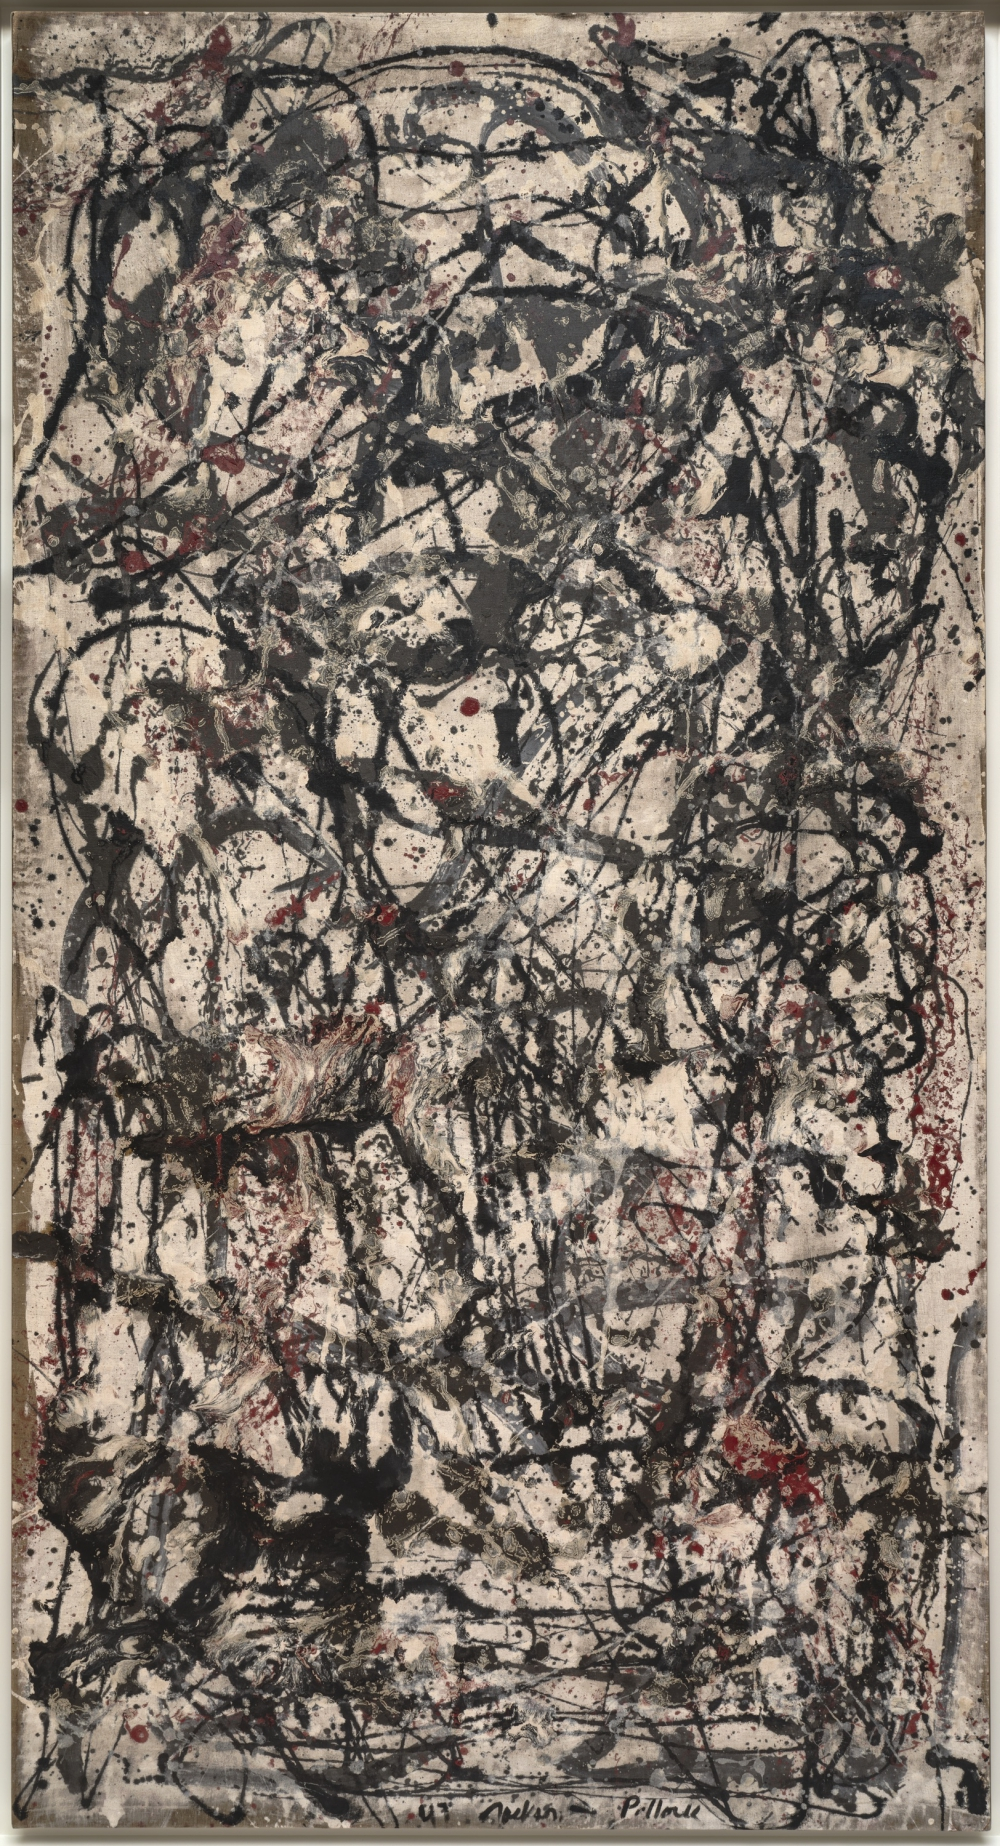 Jackson Pollock (Cody 1912- East Hampton 1956) Foresta incantata (Enchanted Forest), 1947